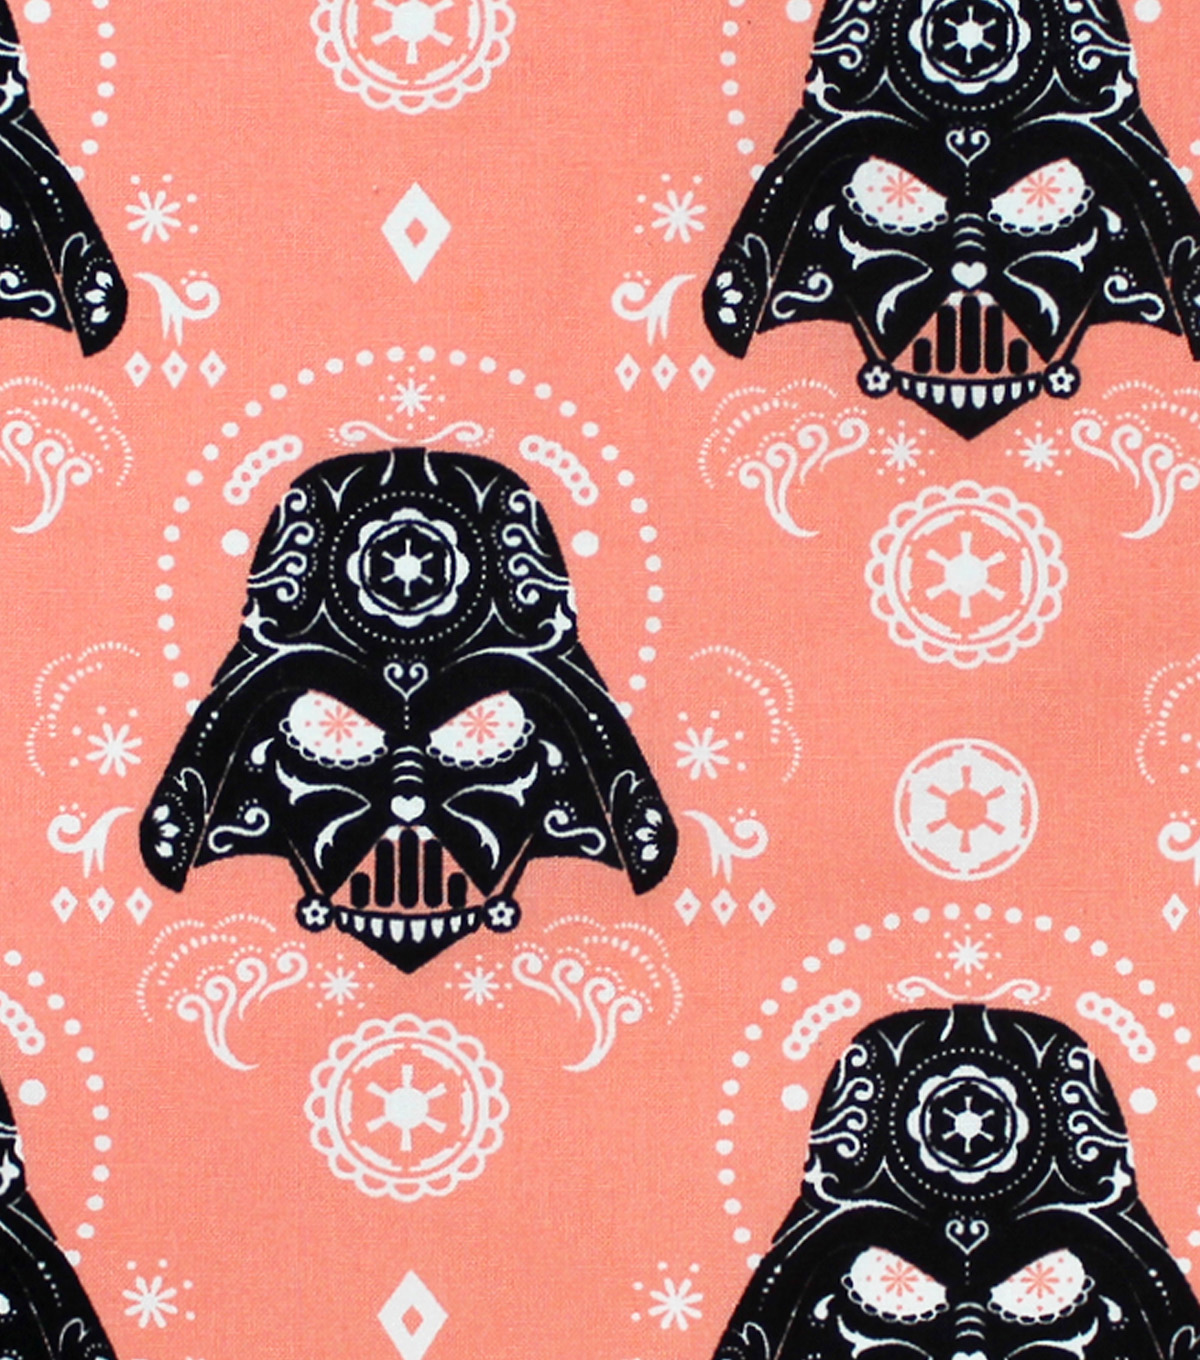 Star Wars Darth Vader Cotton Fabric -Sugar Skulls